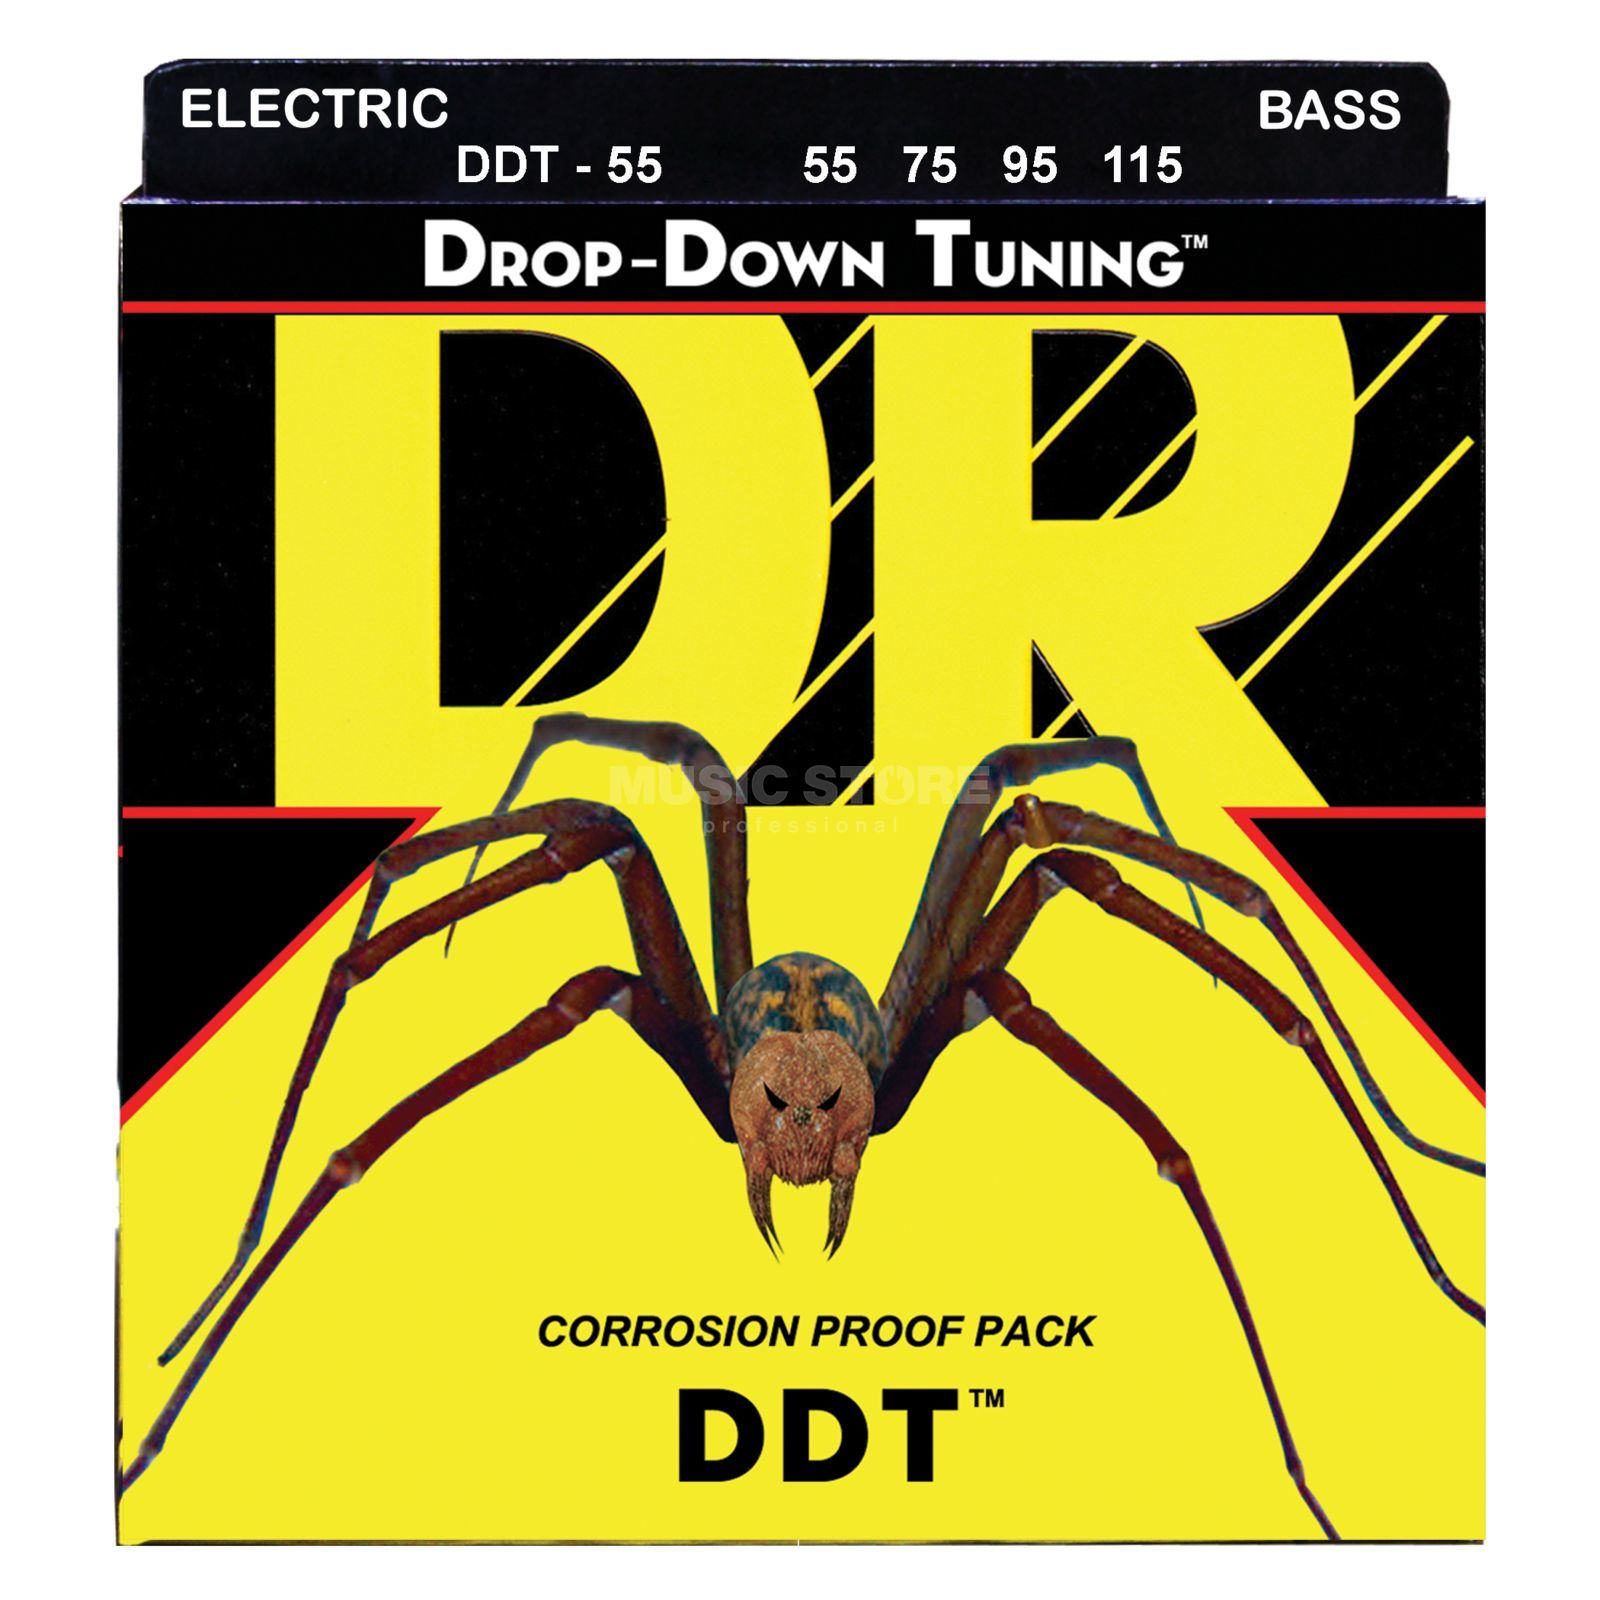 DR 4 Bass Strings 55-115 Drop-Down Tuning DDT-55 Produktbillede